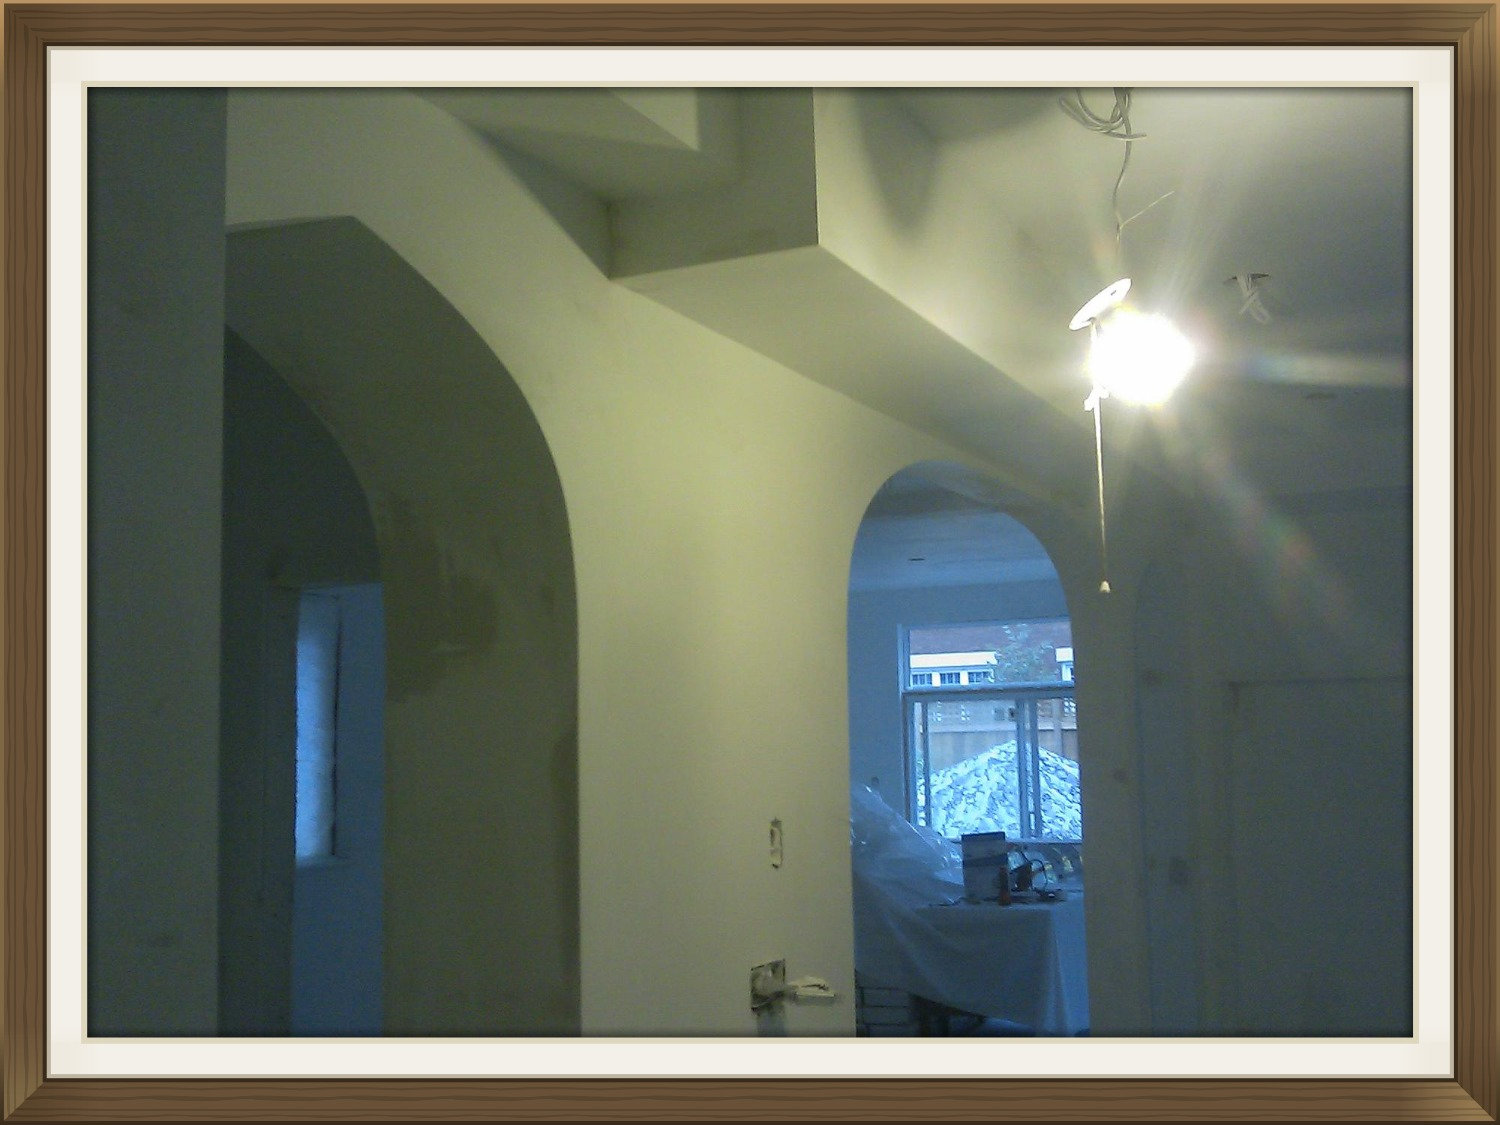 Drywall Supply and Install